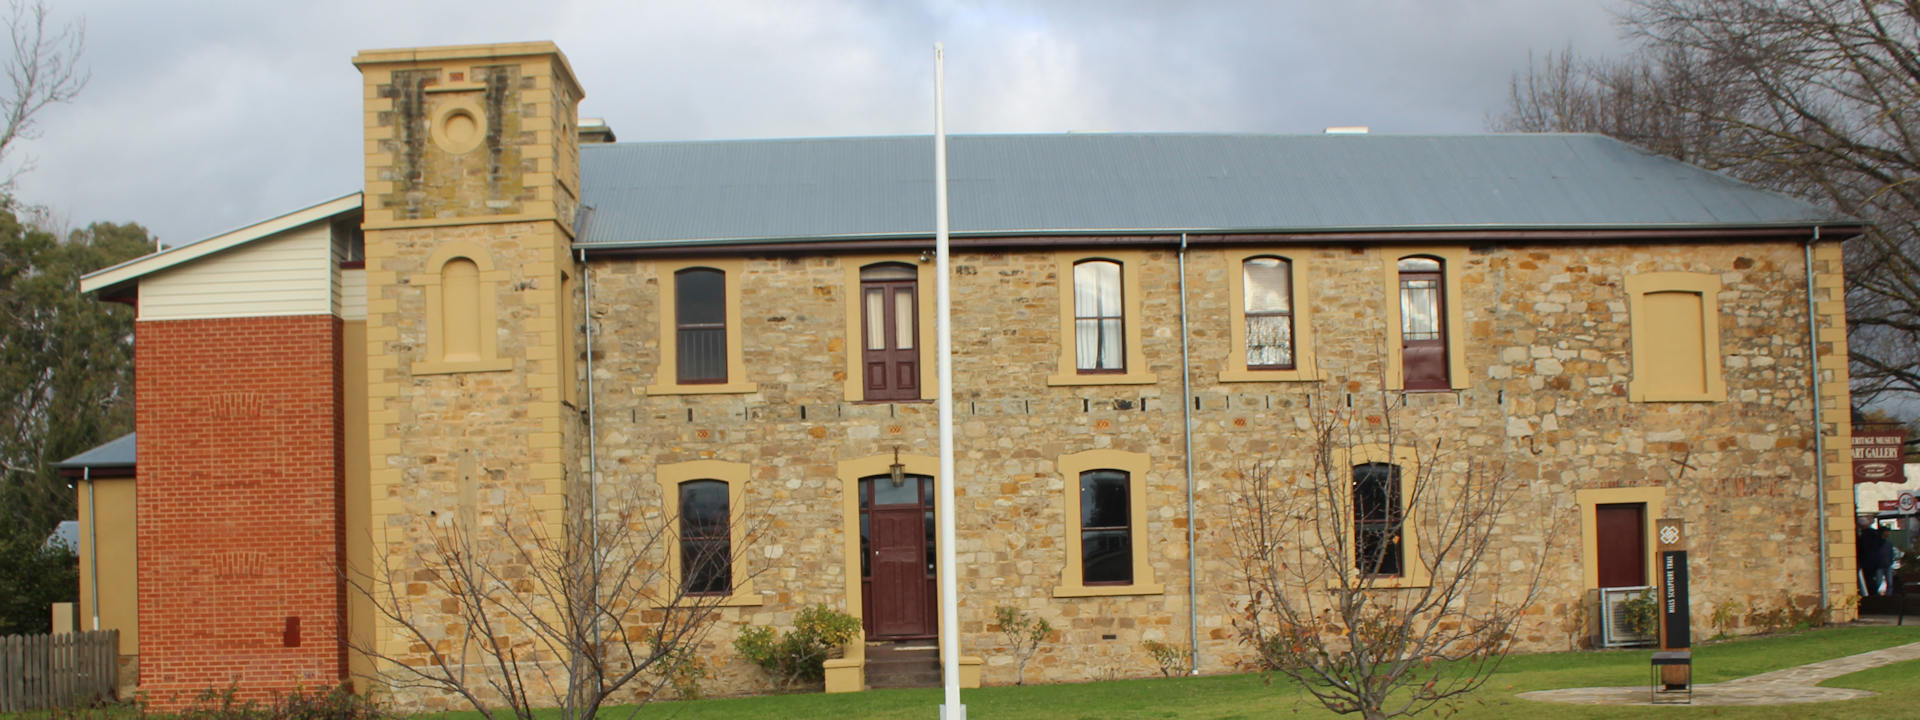 mount barker council building guidelines